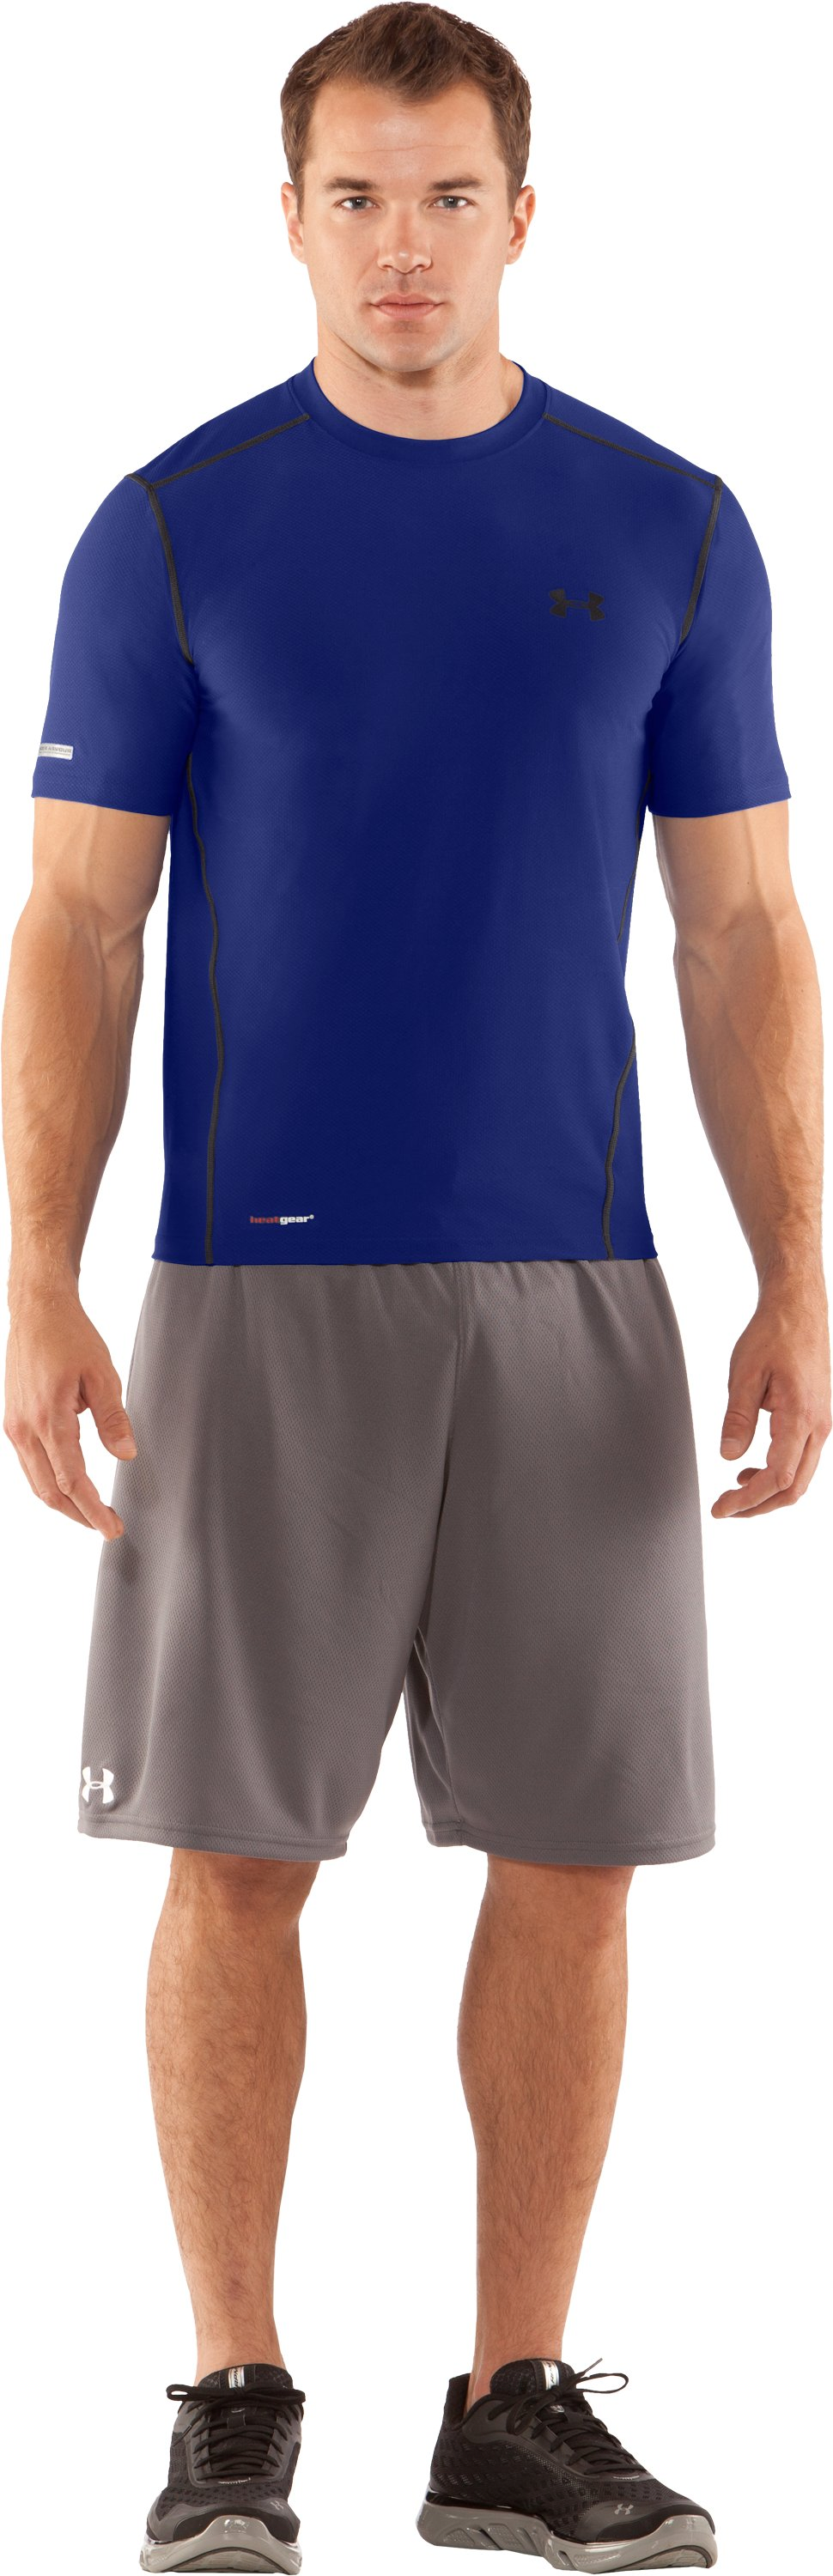 Men's HeatGear® Fitted Short Sleeve Crew, Royal, Front